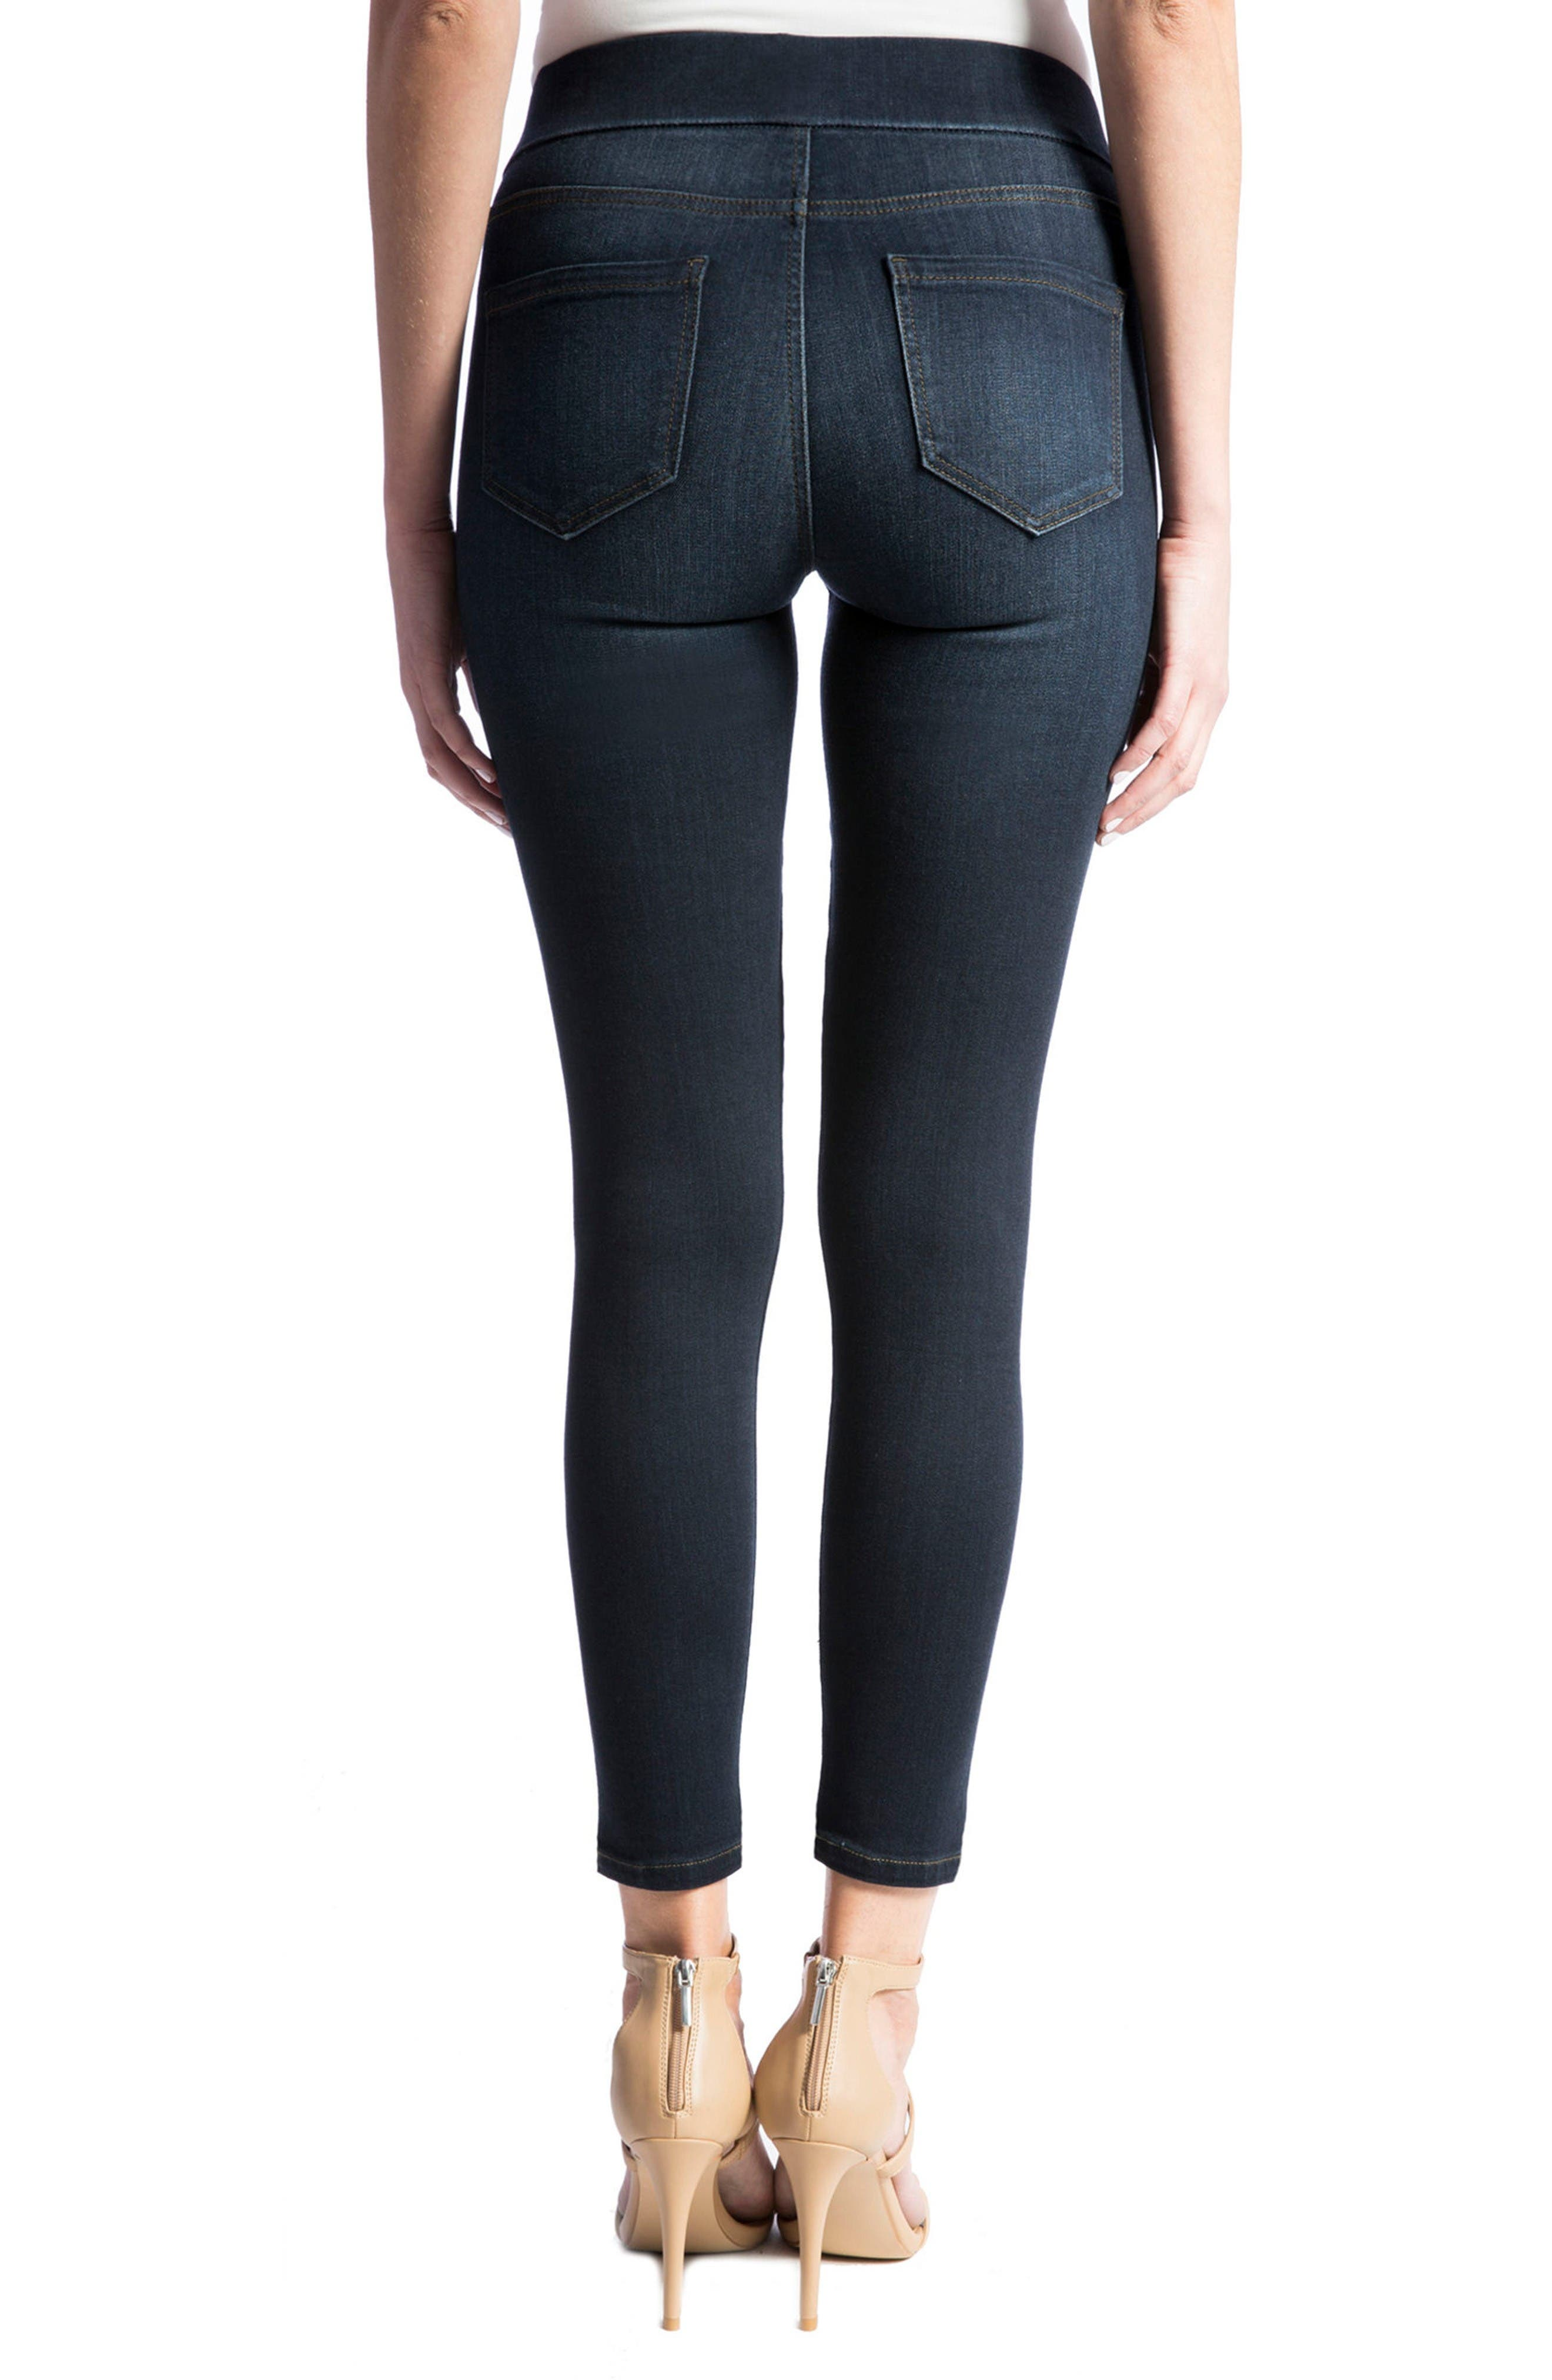 Alternate Image 3  - Liverpool Jeans Company High Rise Stretch Denim Ankle Leggings (Dynasty Dark) (Regular & Petite)